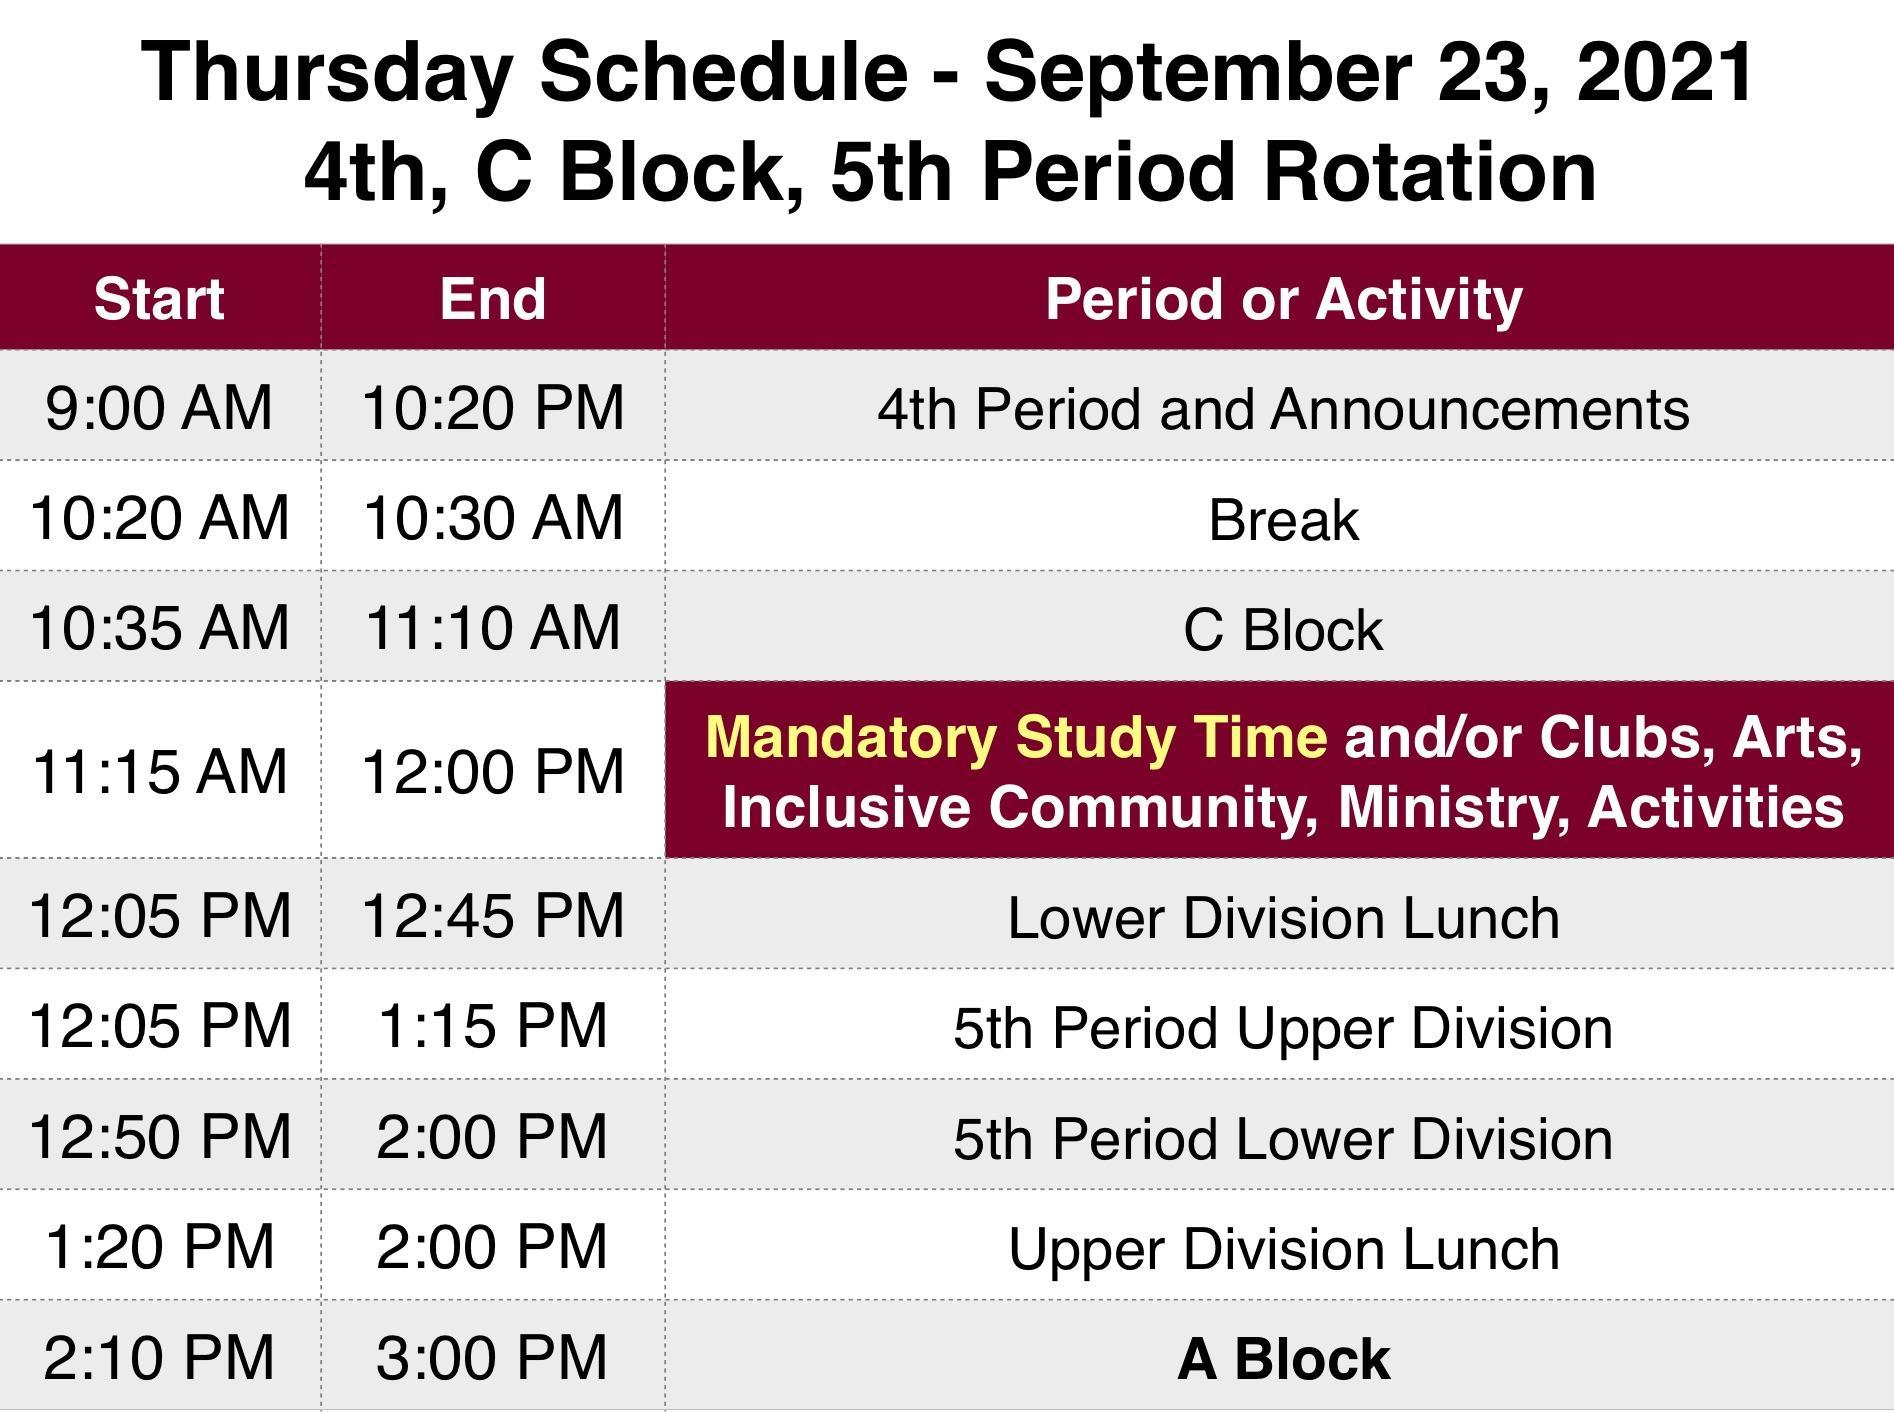 Thursday Schedule September 23 2021 Periods 4, C Block and 5